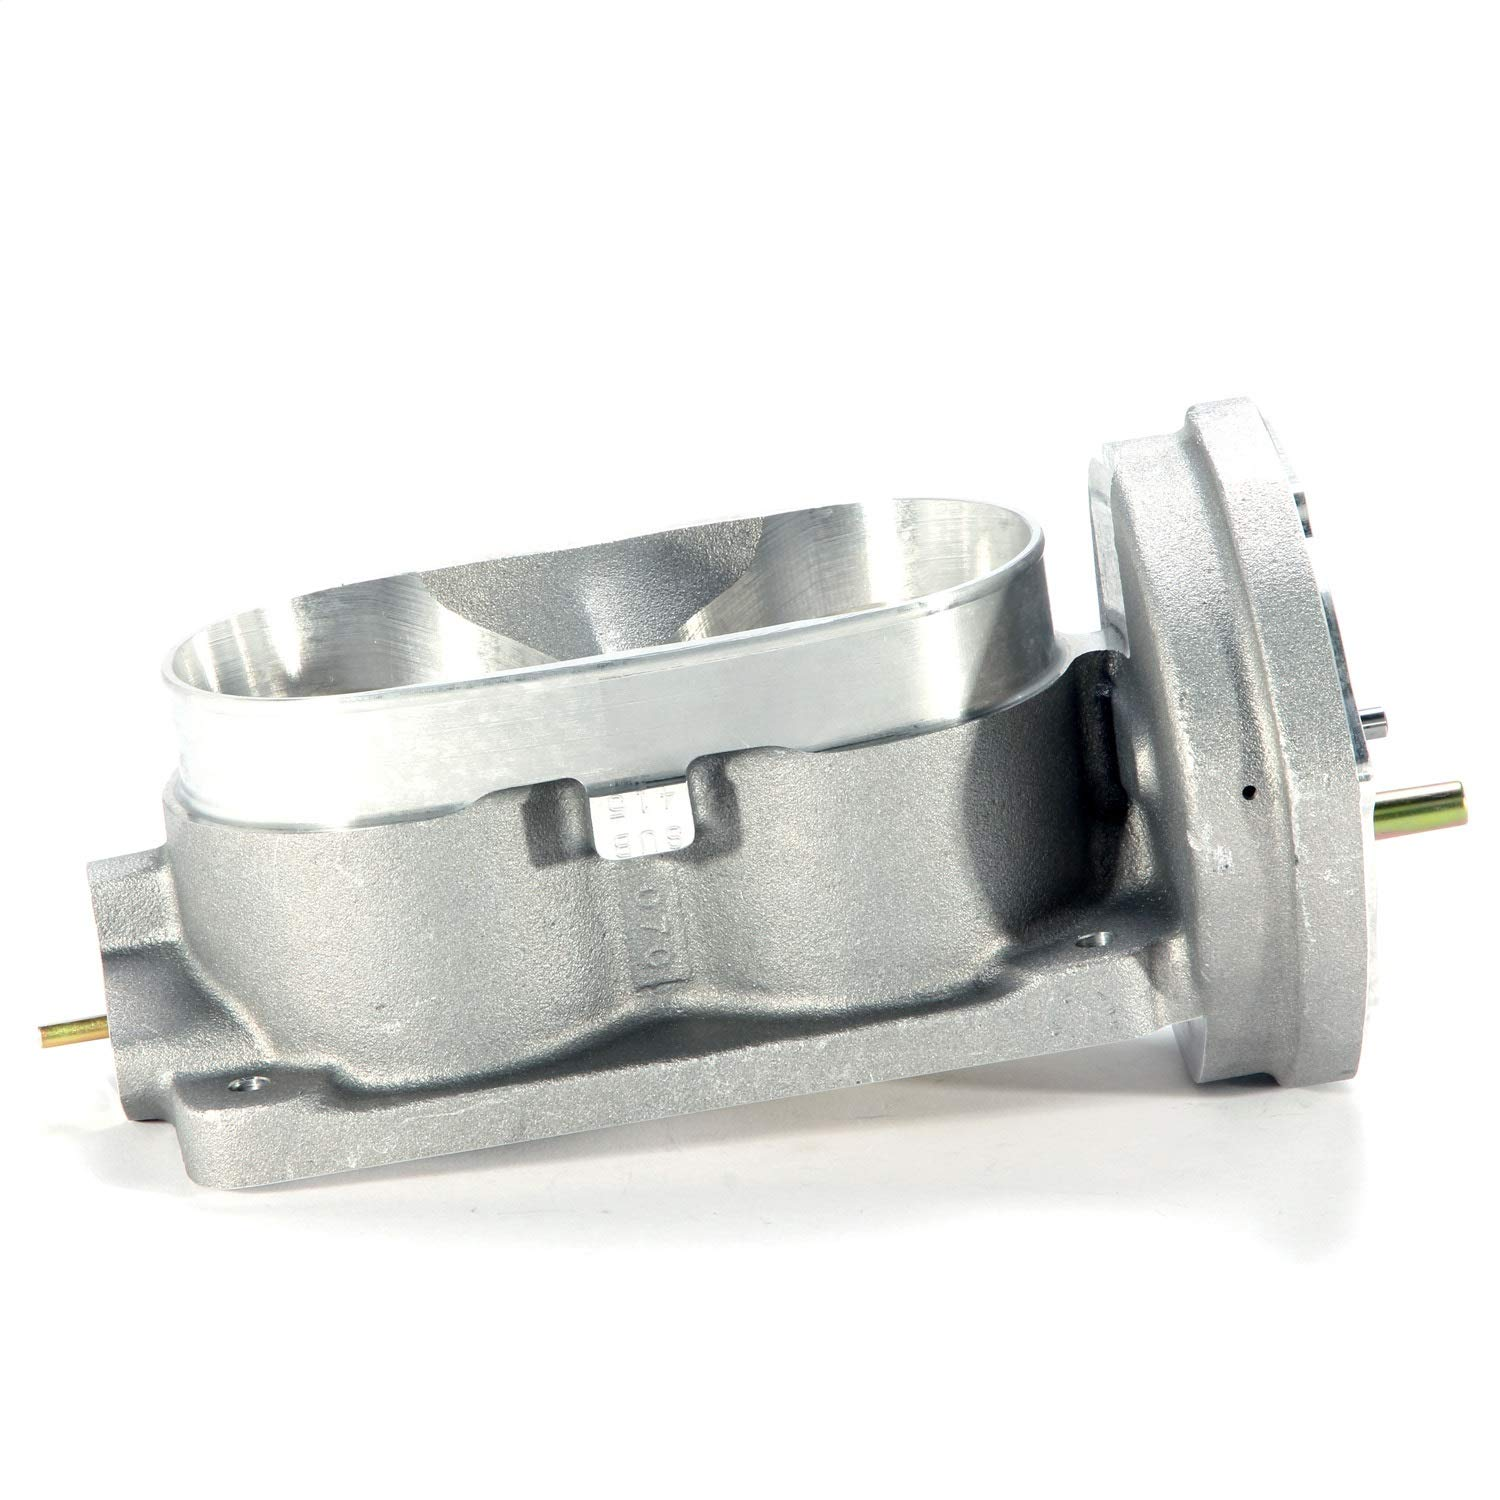 BBK 1763 Twin 62mm Throttle Body - High Flow Power Plus Series for Ford Mustang GT 3V by BBK Performance